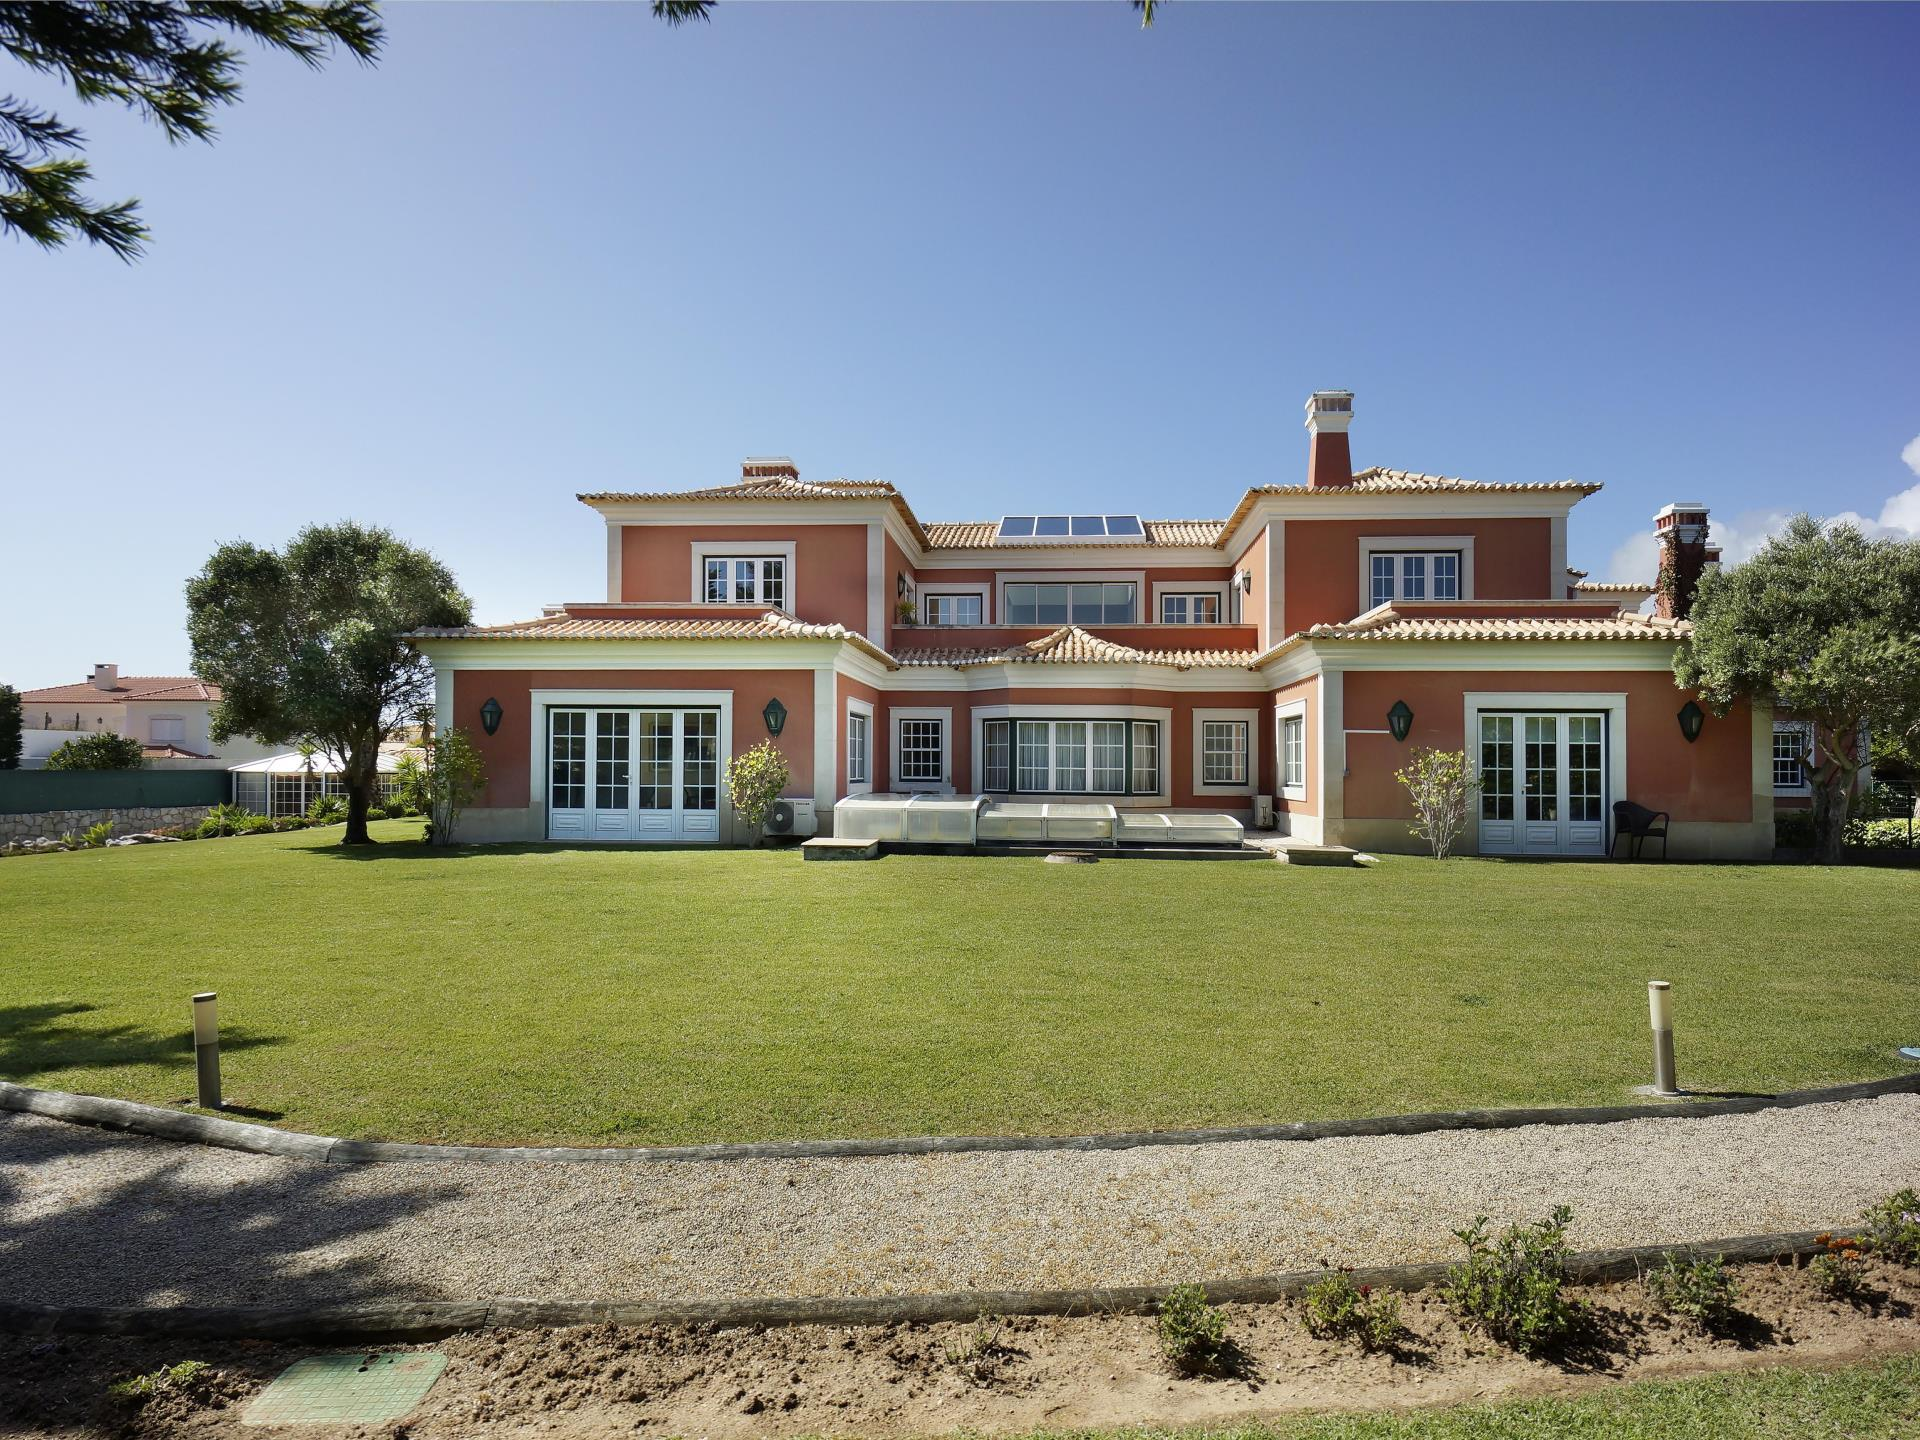 Tek Ailelik Ev için Satış at House, 10 bedrooms, for Sale Quinta Da Marinha, Cascais, Lisboa Portekiz